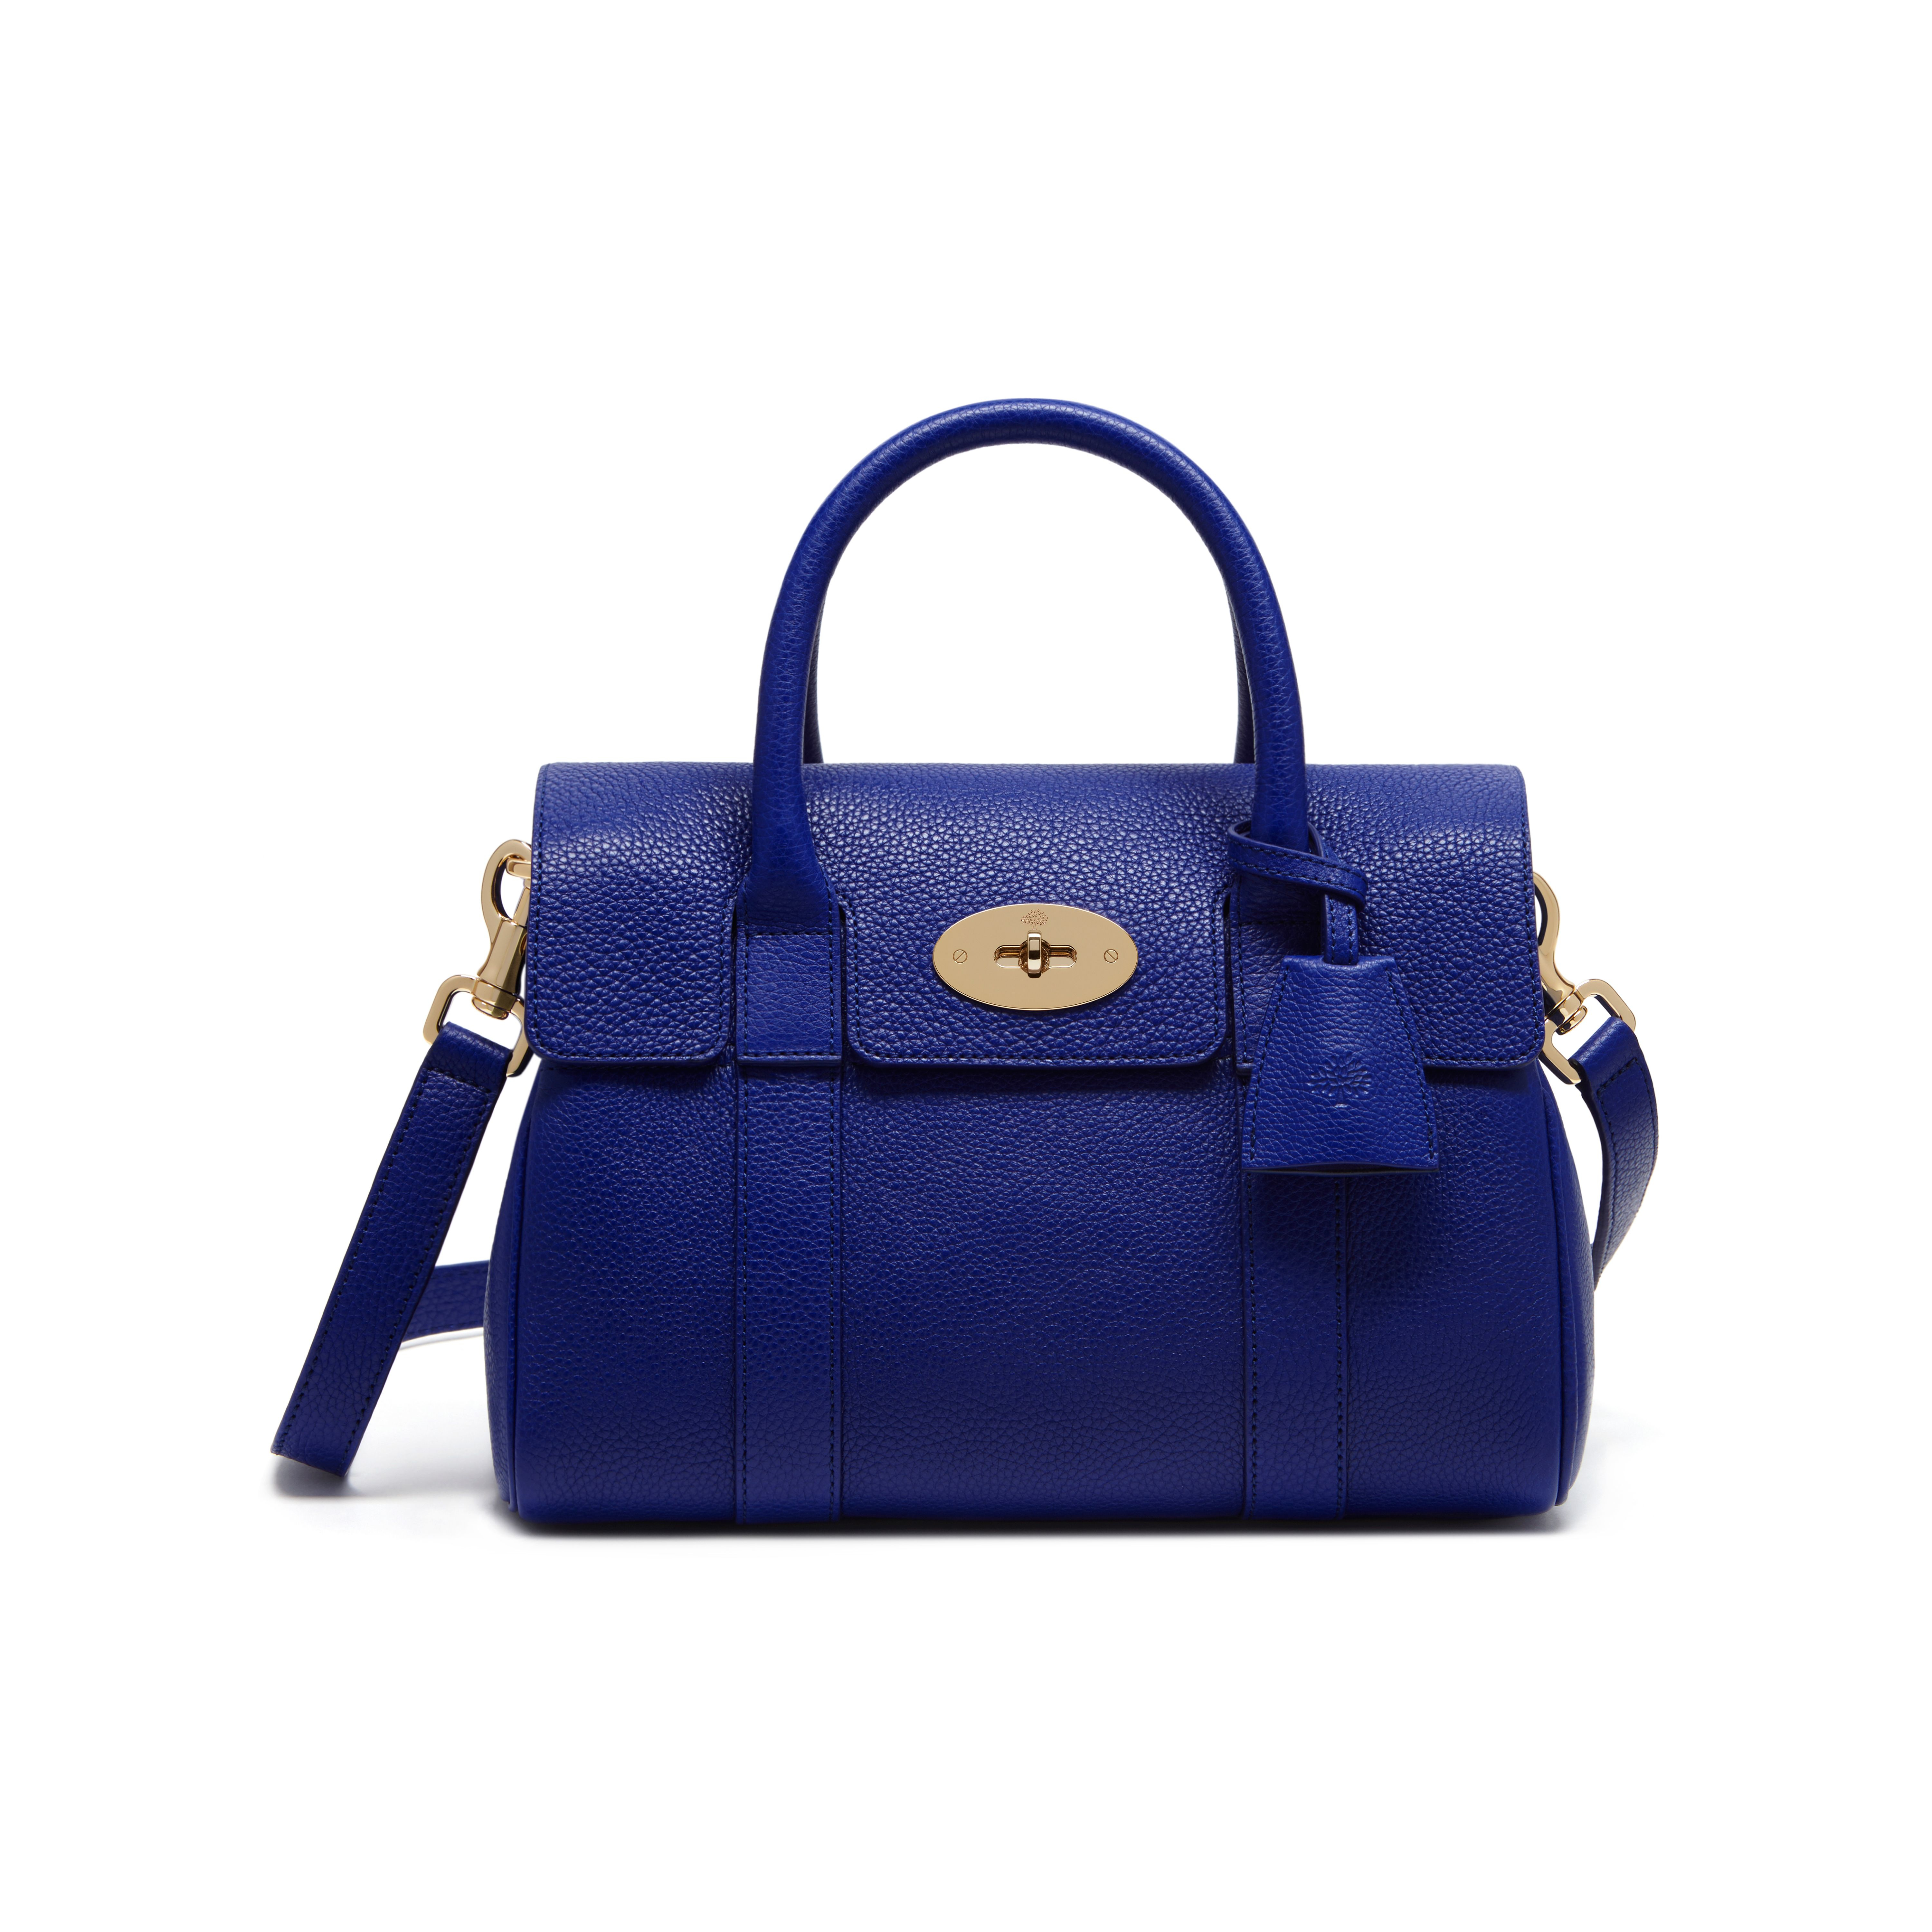 88dd087edf Mulberry Bayswater Small Grained Leather Bag in Blue - Lyst